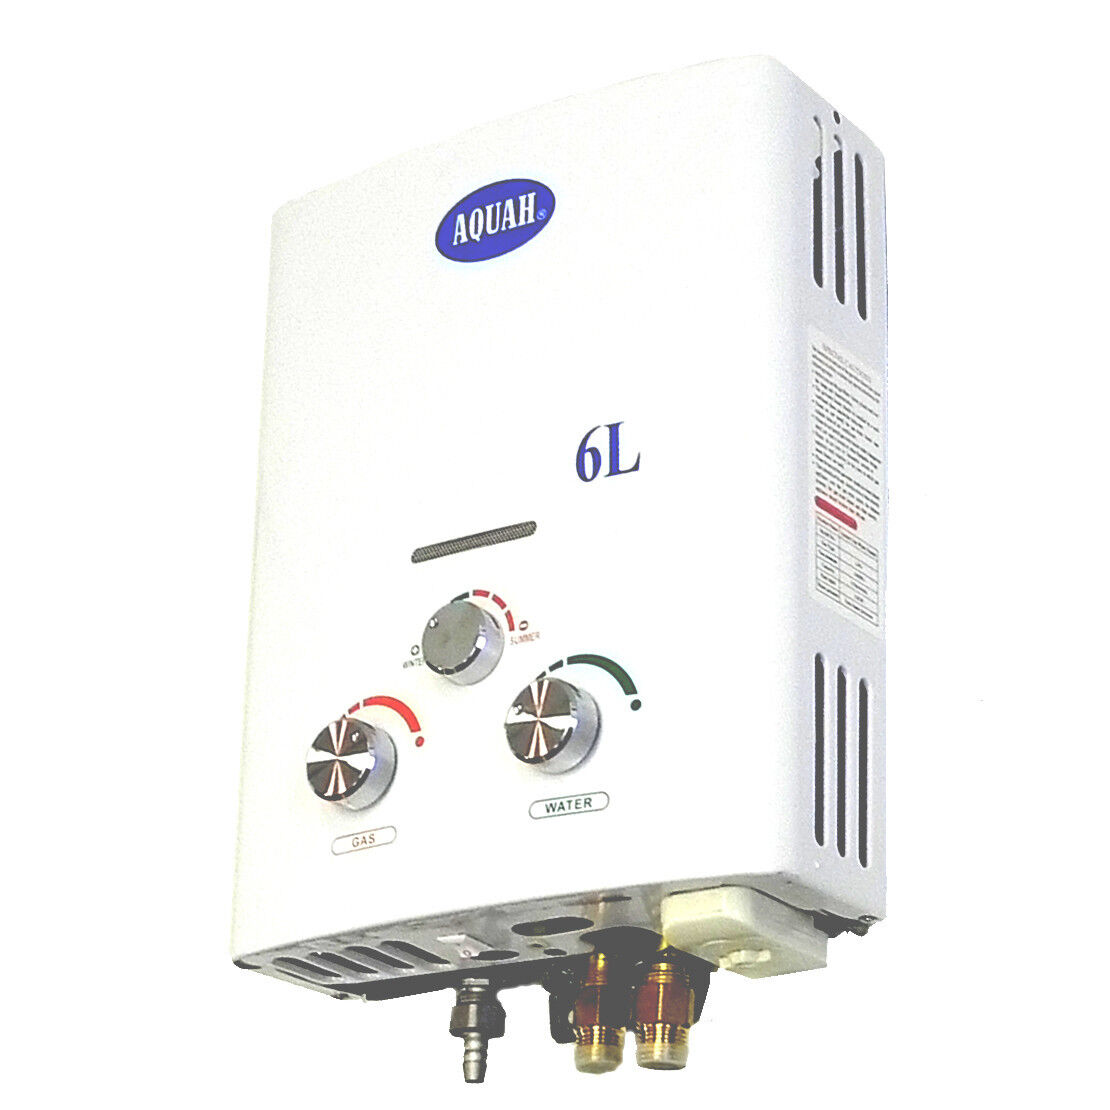 Aquah Outdoor Portable Propane Tankless Gas Water Heater 6l Up To 2 0 Gpm Ebay